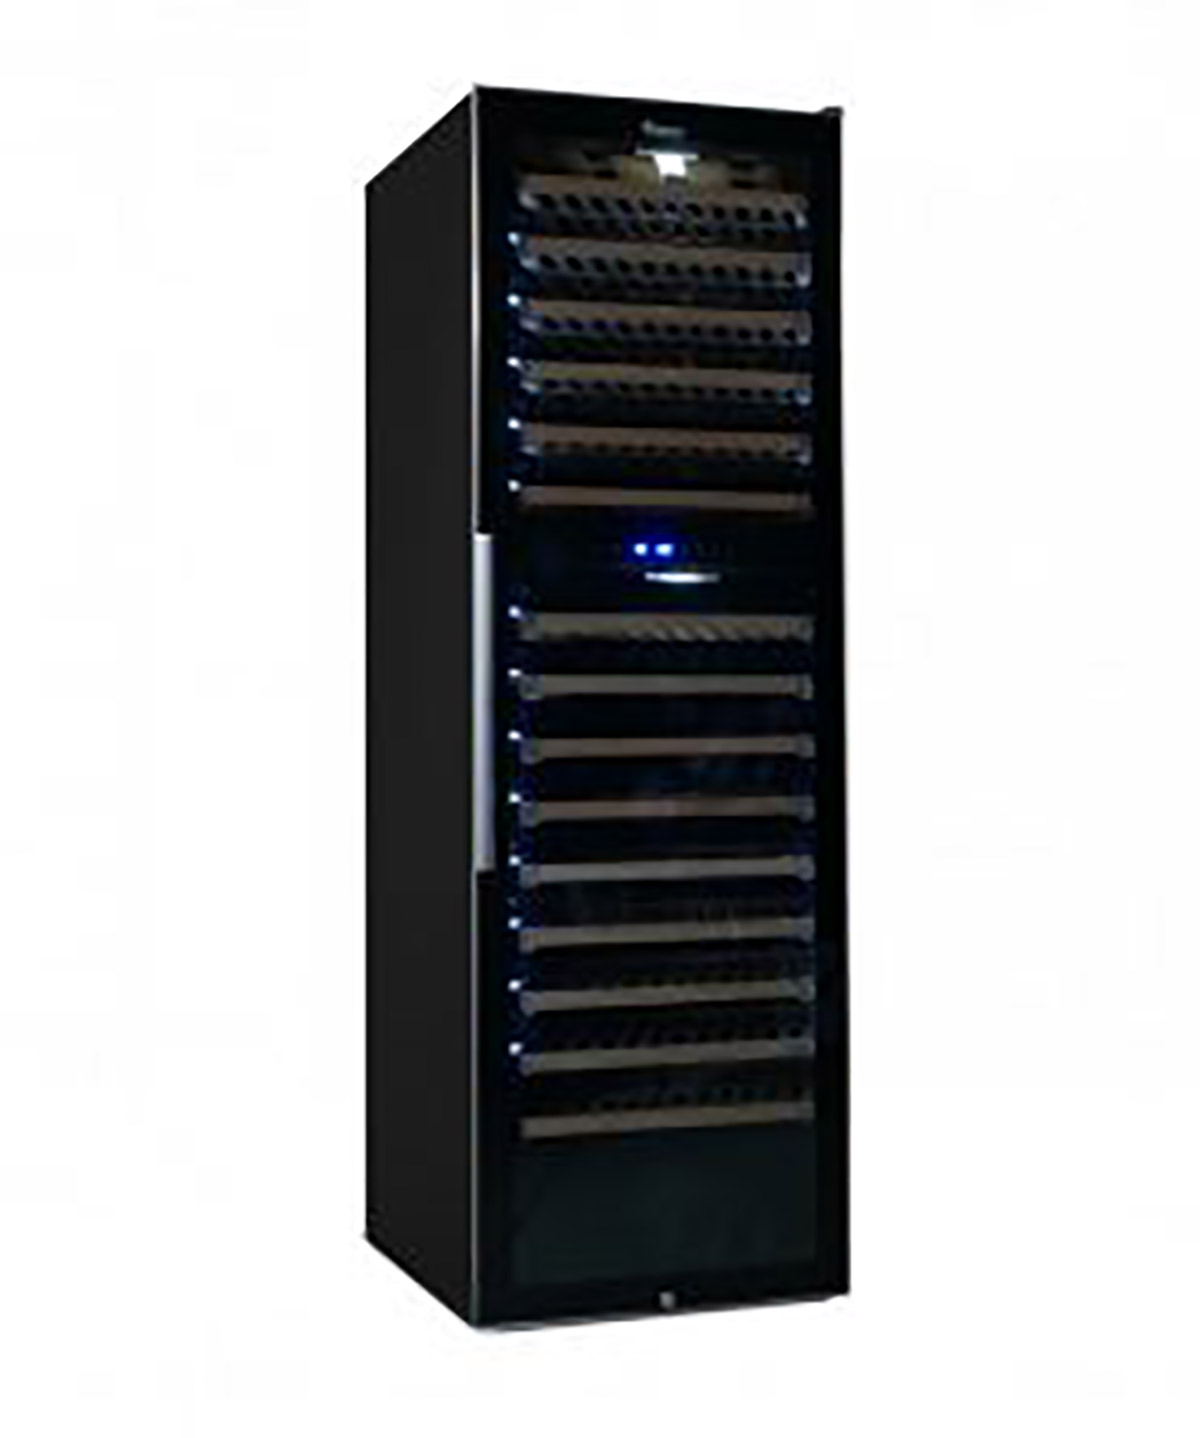 Professional climatic wine fridge 185 bottles